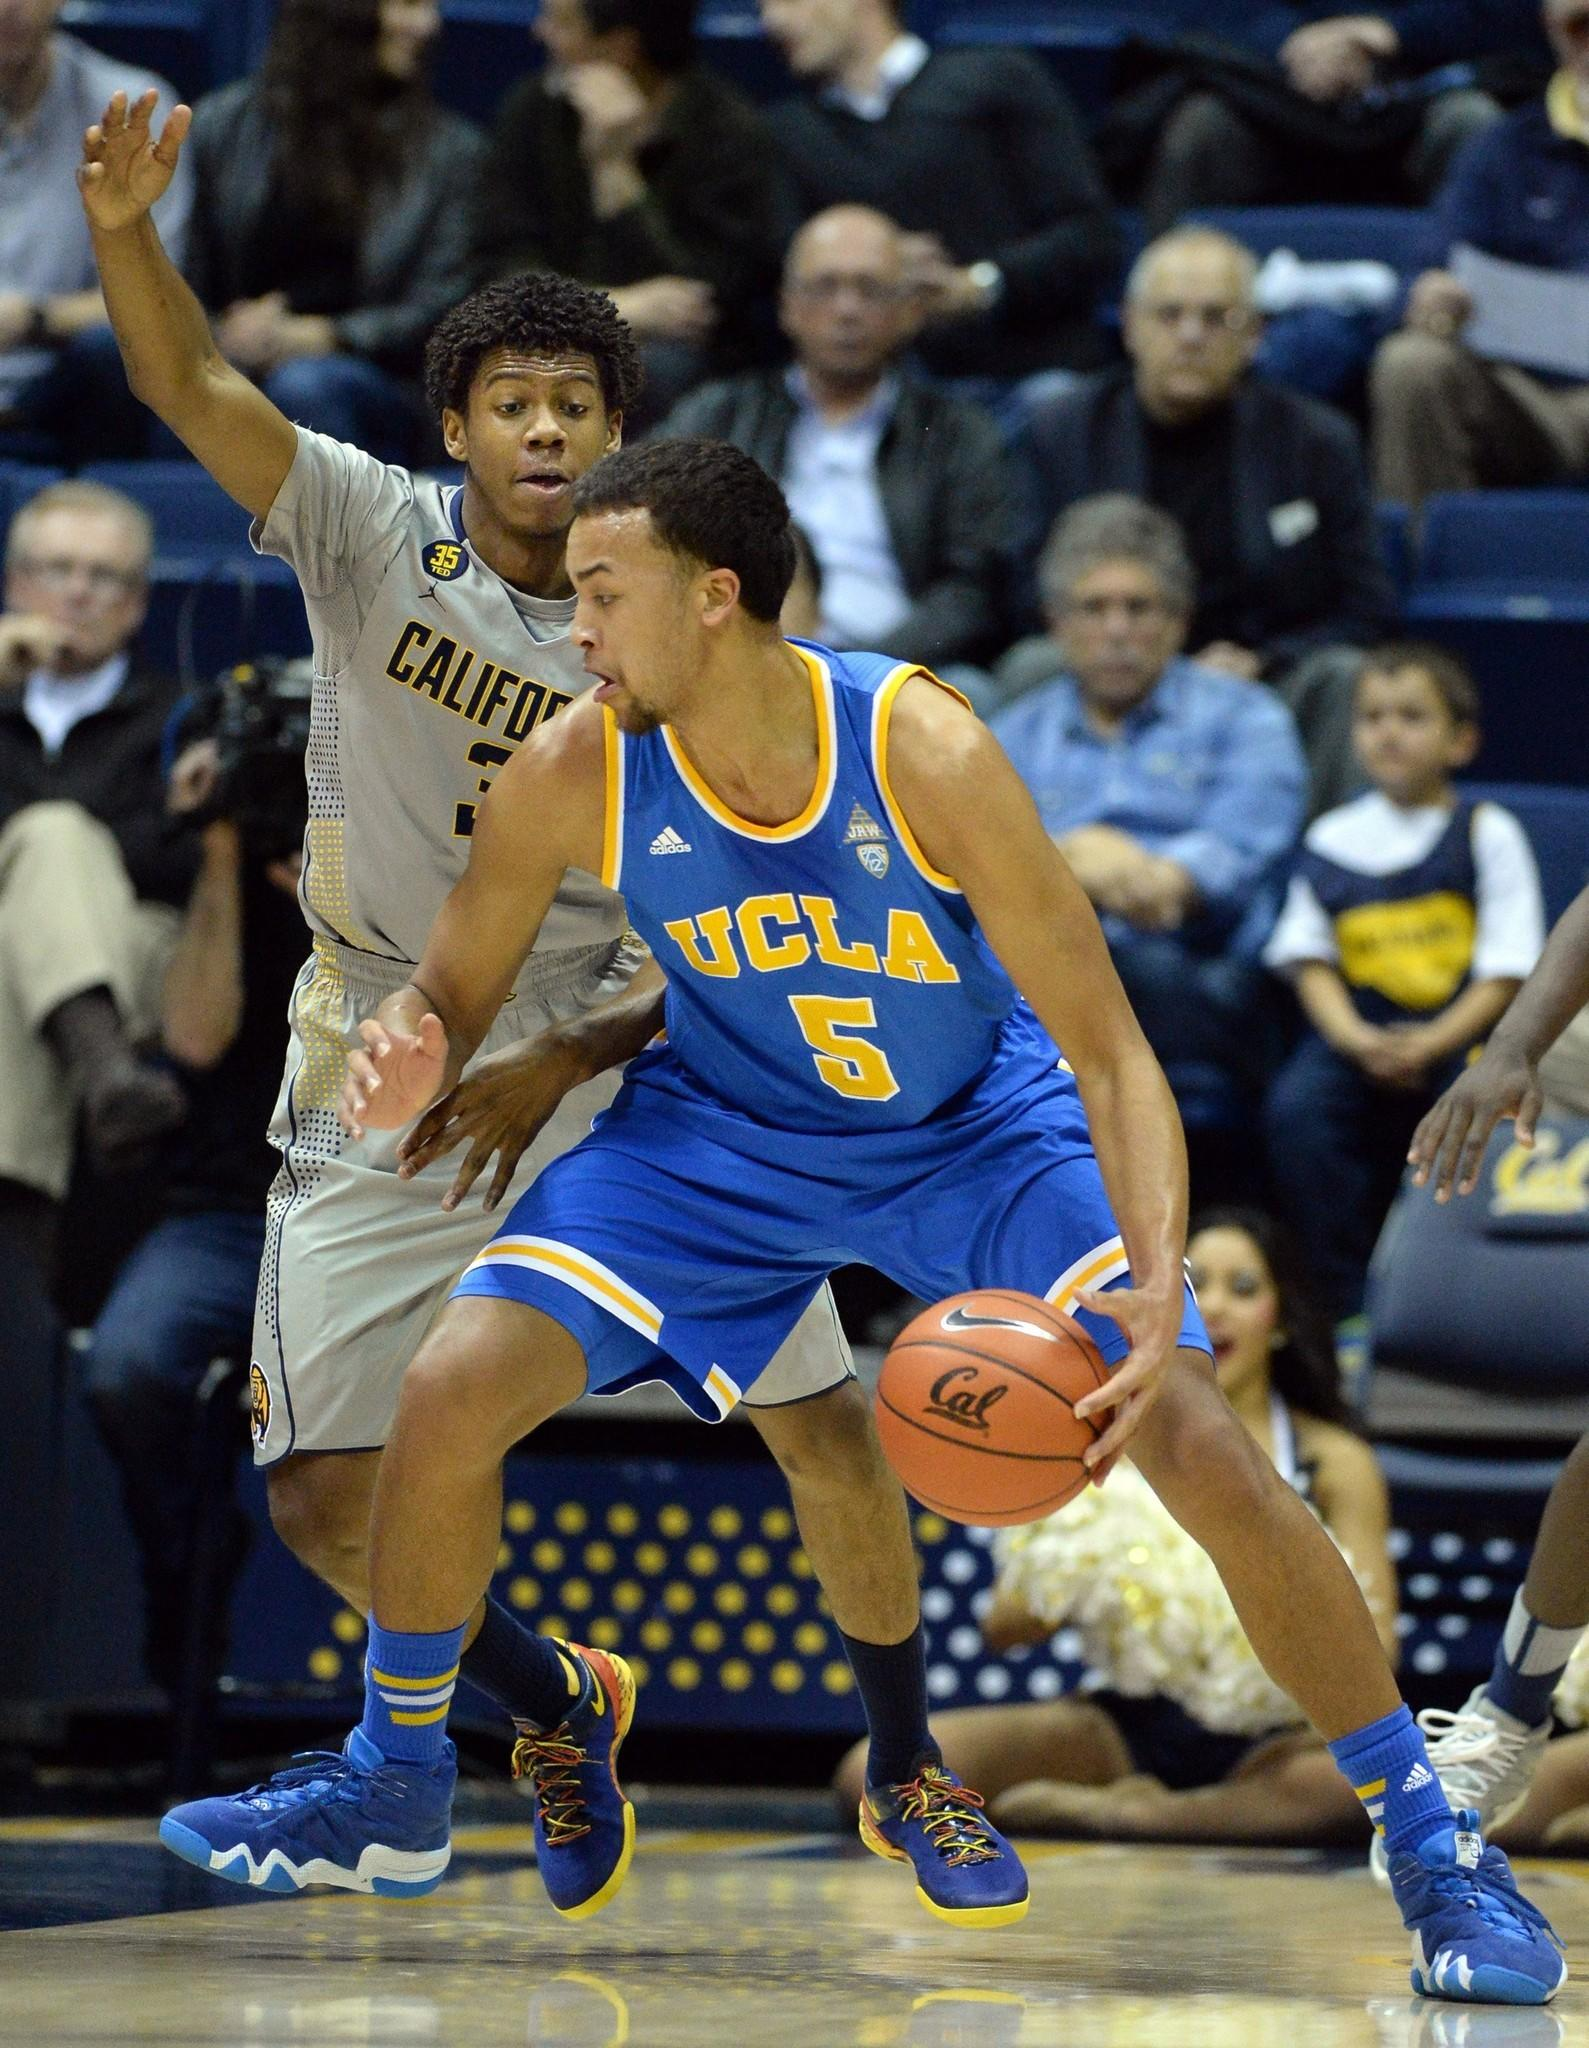 UCLA's Kyle Anderson is defended by California's Tyrone Wallace during the first half of the Bruins' 86-66 win Wednesday over the Golden Bears at Haas Pavilion in Berkeley, Calif.